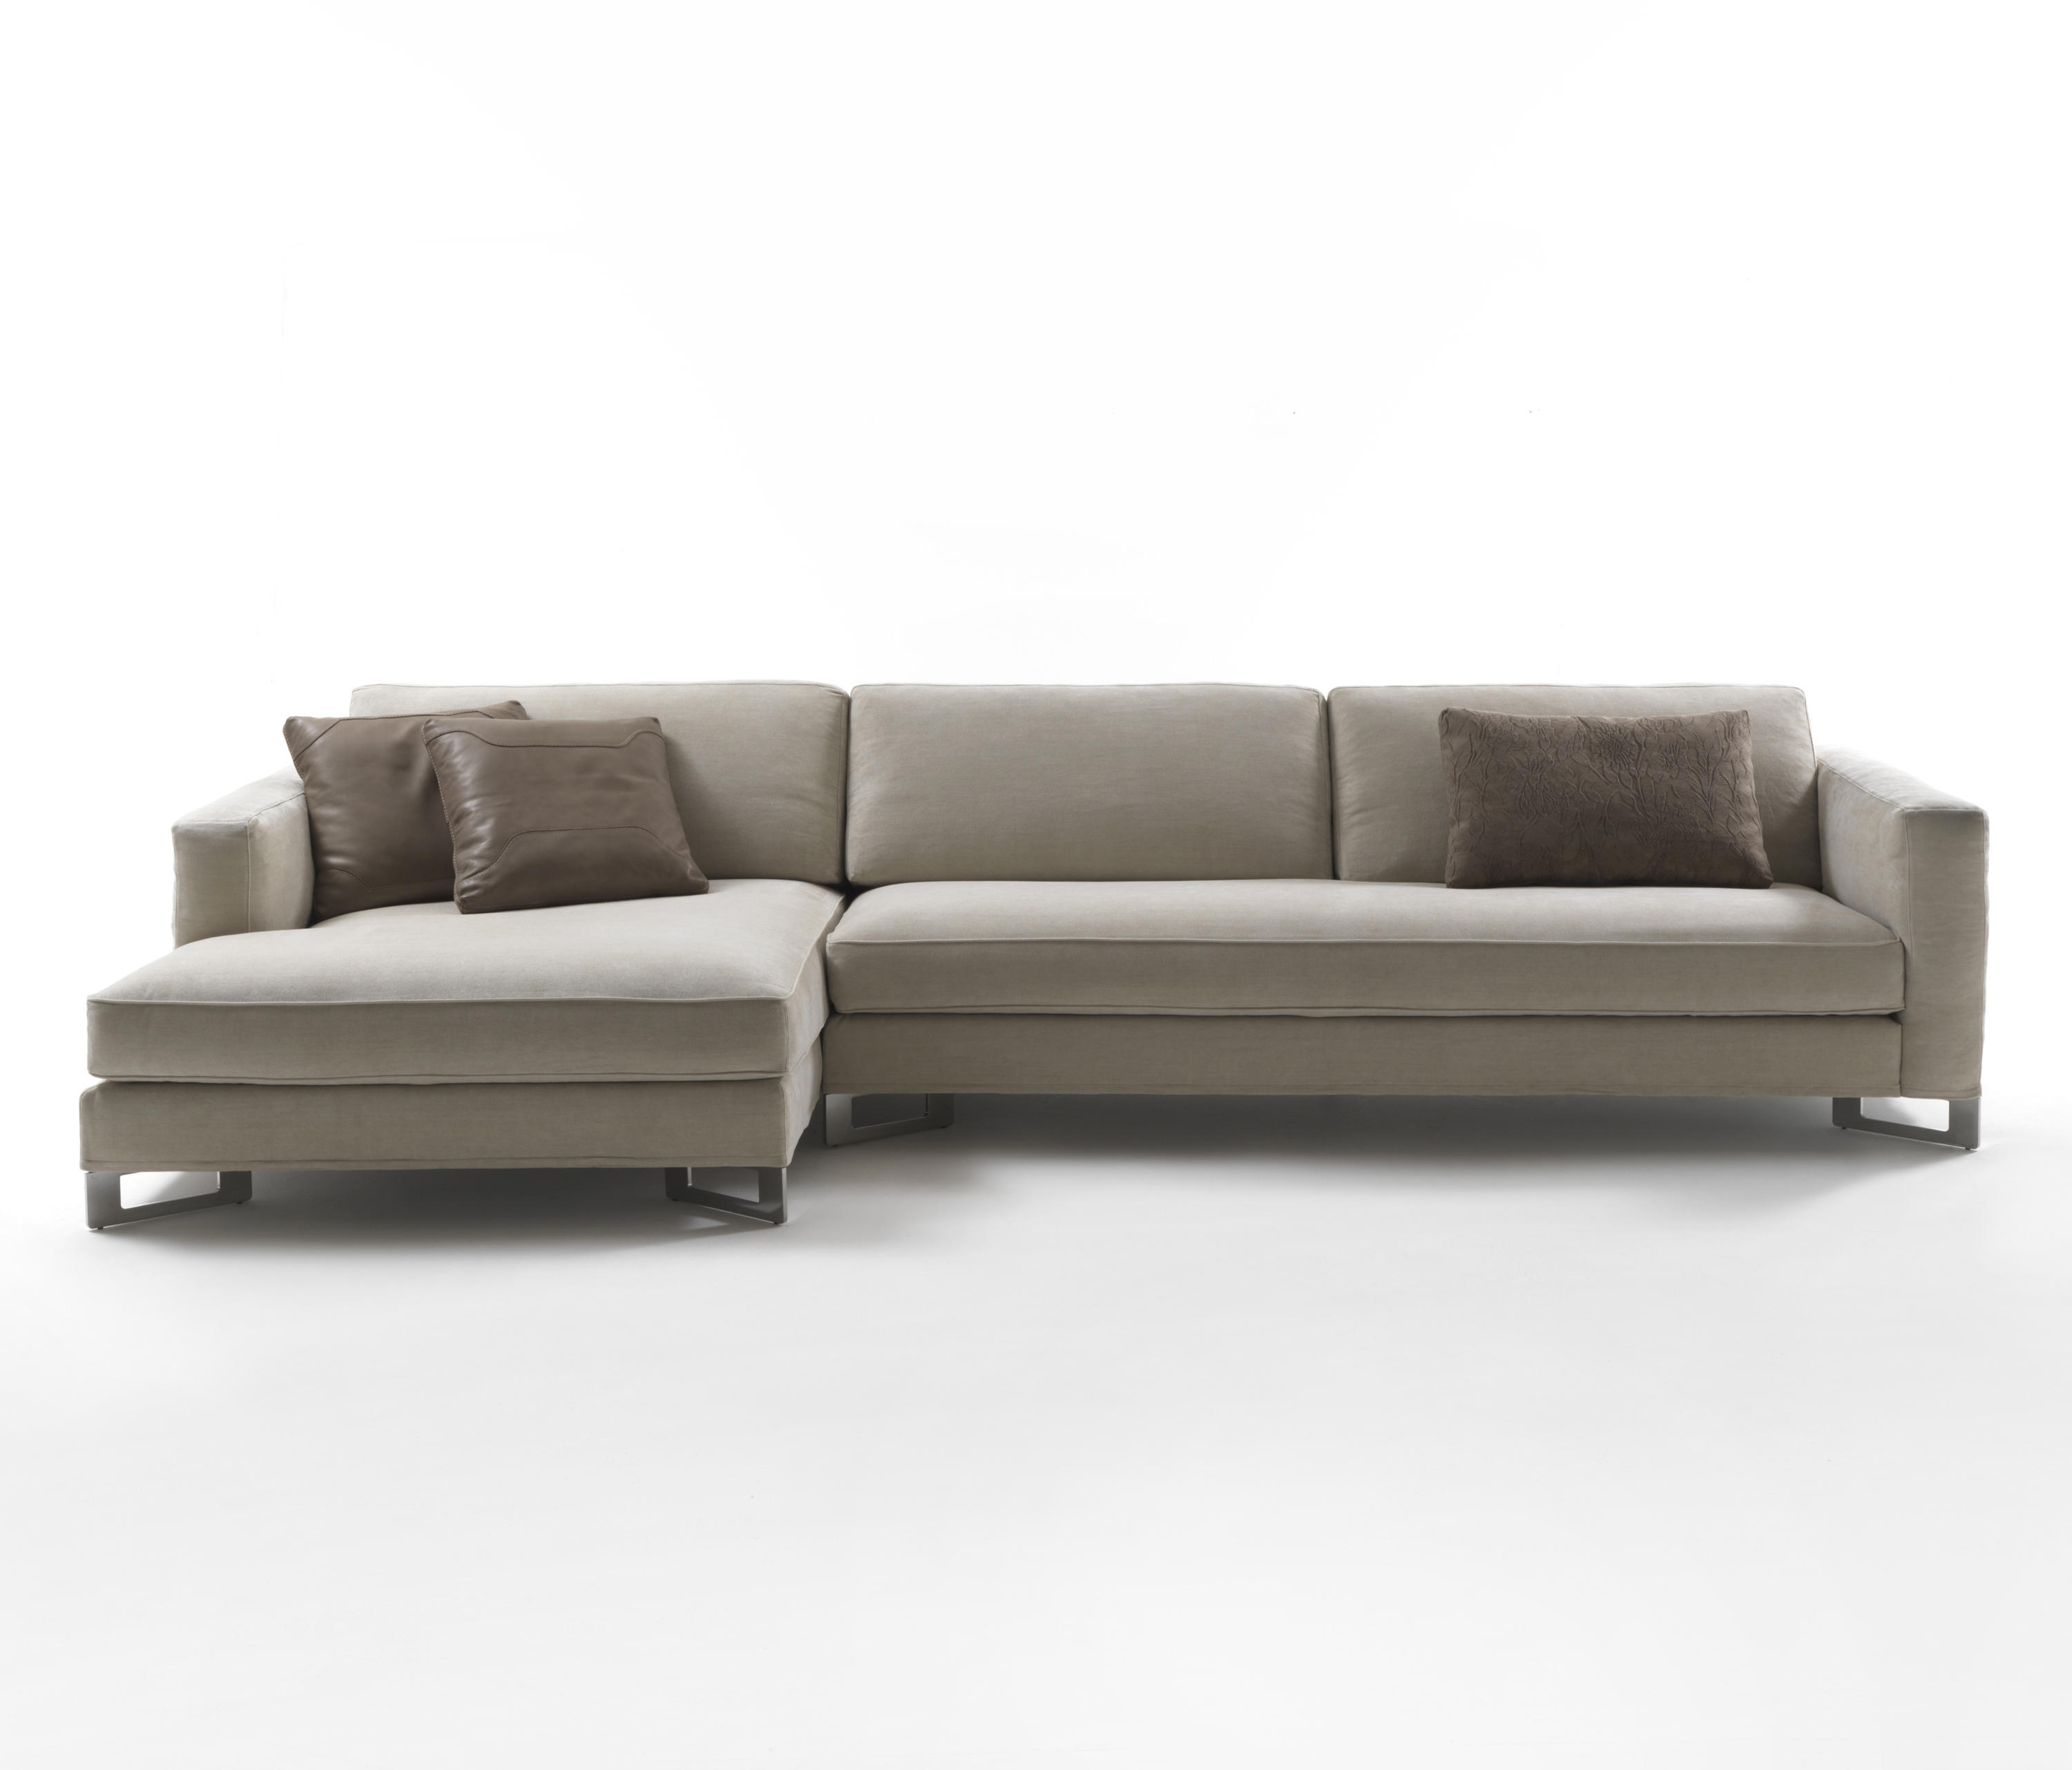 Awesome Davis Out Sofas From Frigerio Architonic Gmtry Best Dining Table And Chair Ideas Images Gmtryco